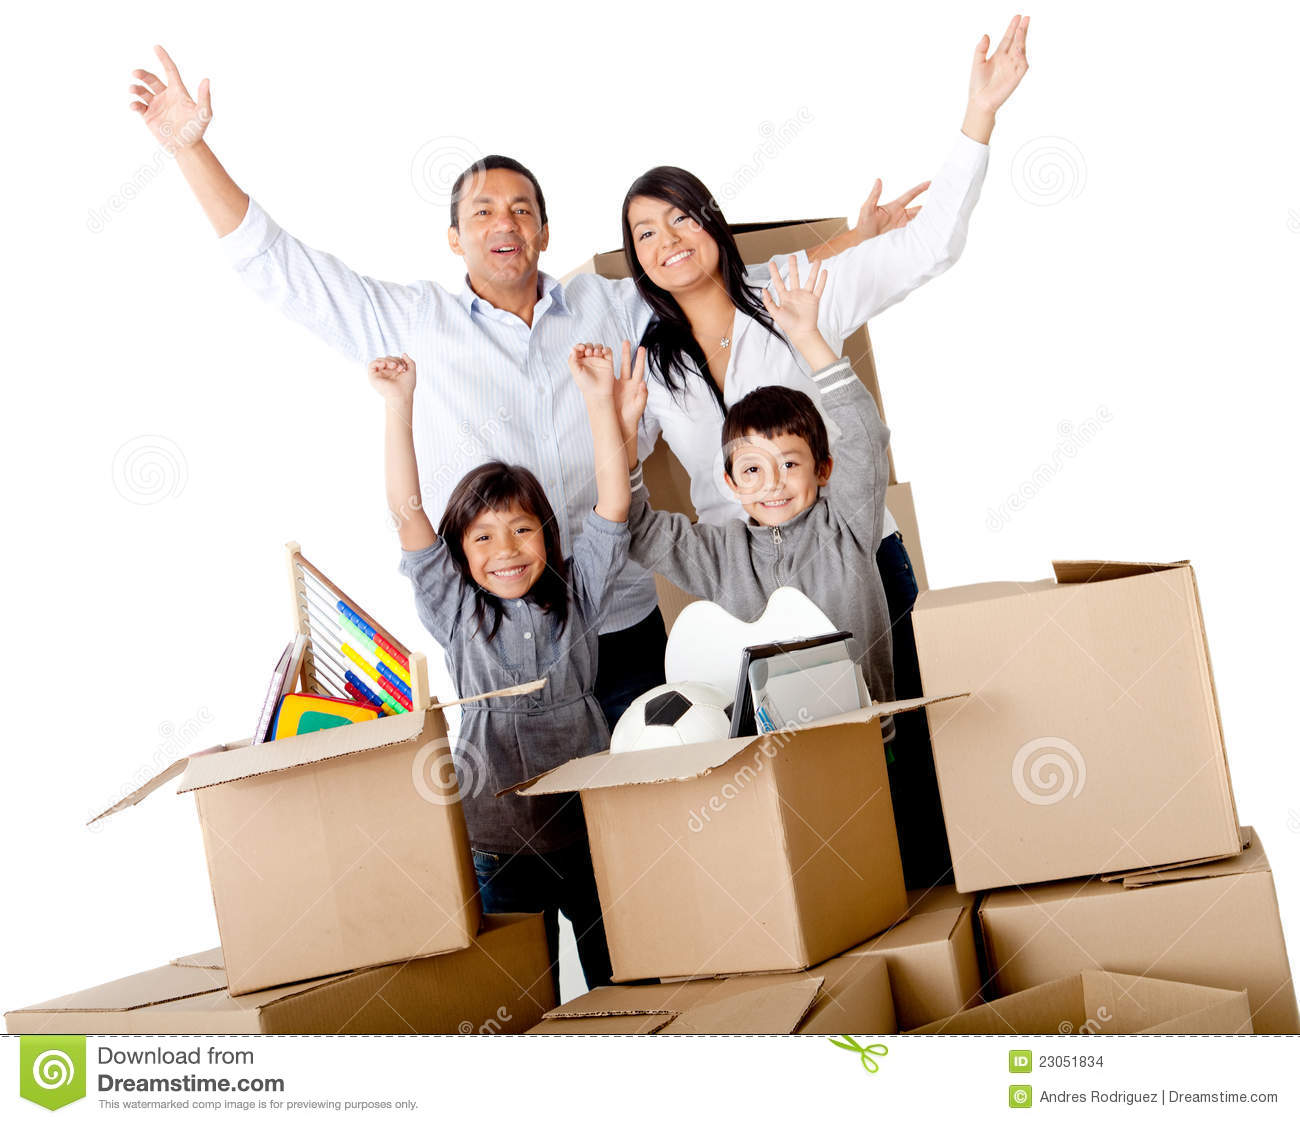 Family excited moving house packing in cardboard boxes isolated